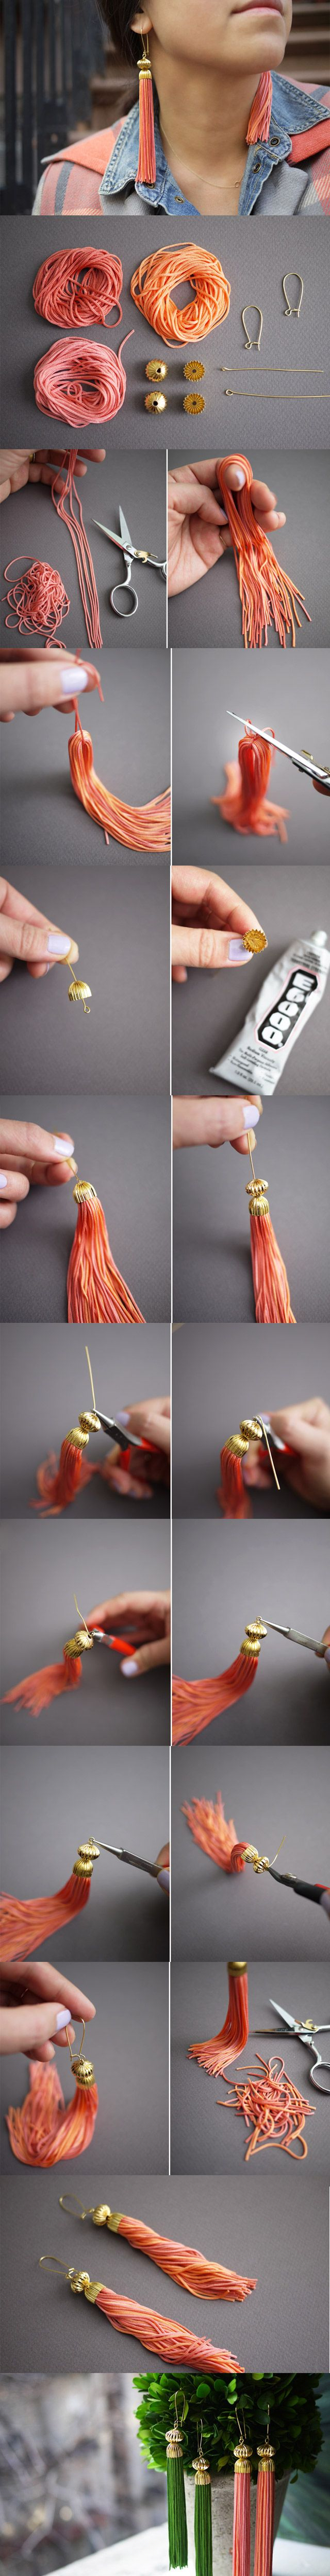 DIY Tassels. I would do these for not earrings but something else